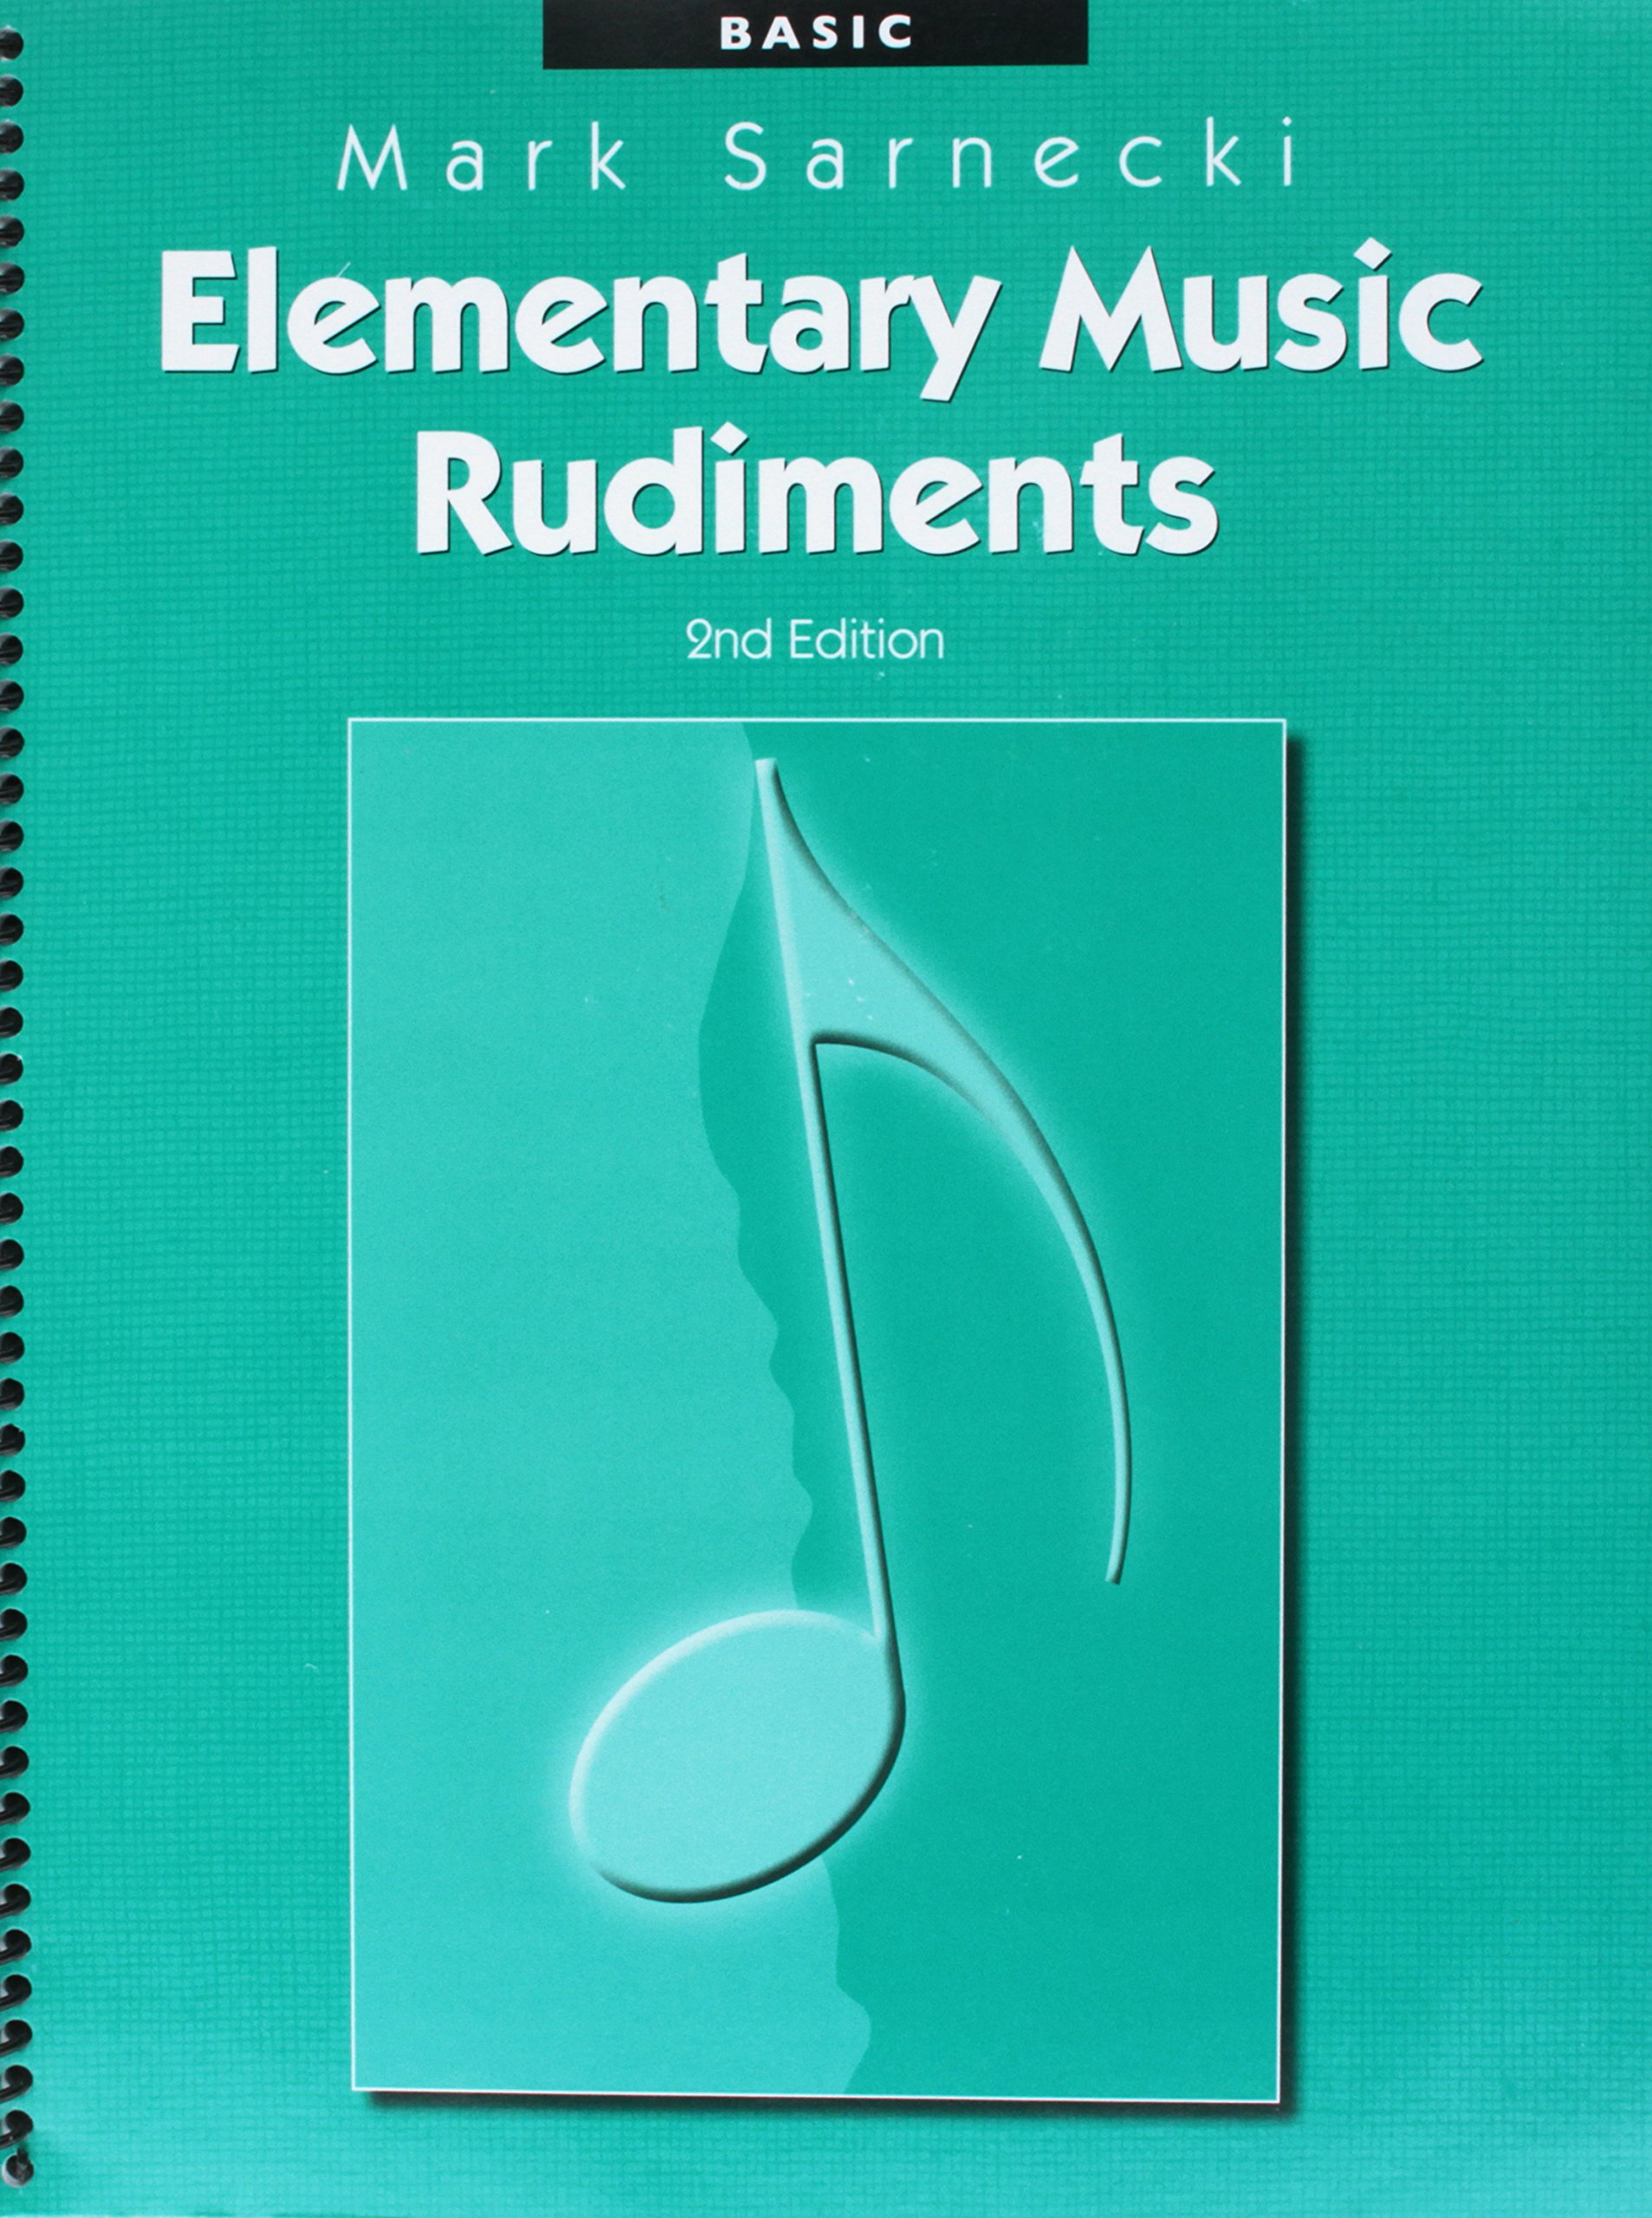 Tsr01 elementary music rudiments 2nd edition basic mark tsr01 elementary music rudiments 2nd edition basic mark sarnecki frederick harris 9781554402731 amazon books fandeluxe Gallery